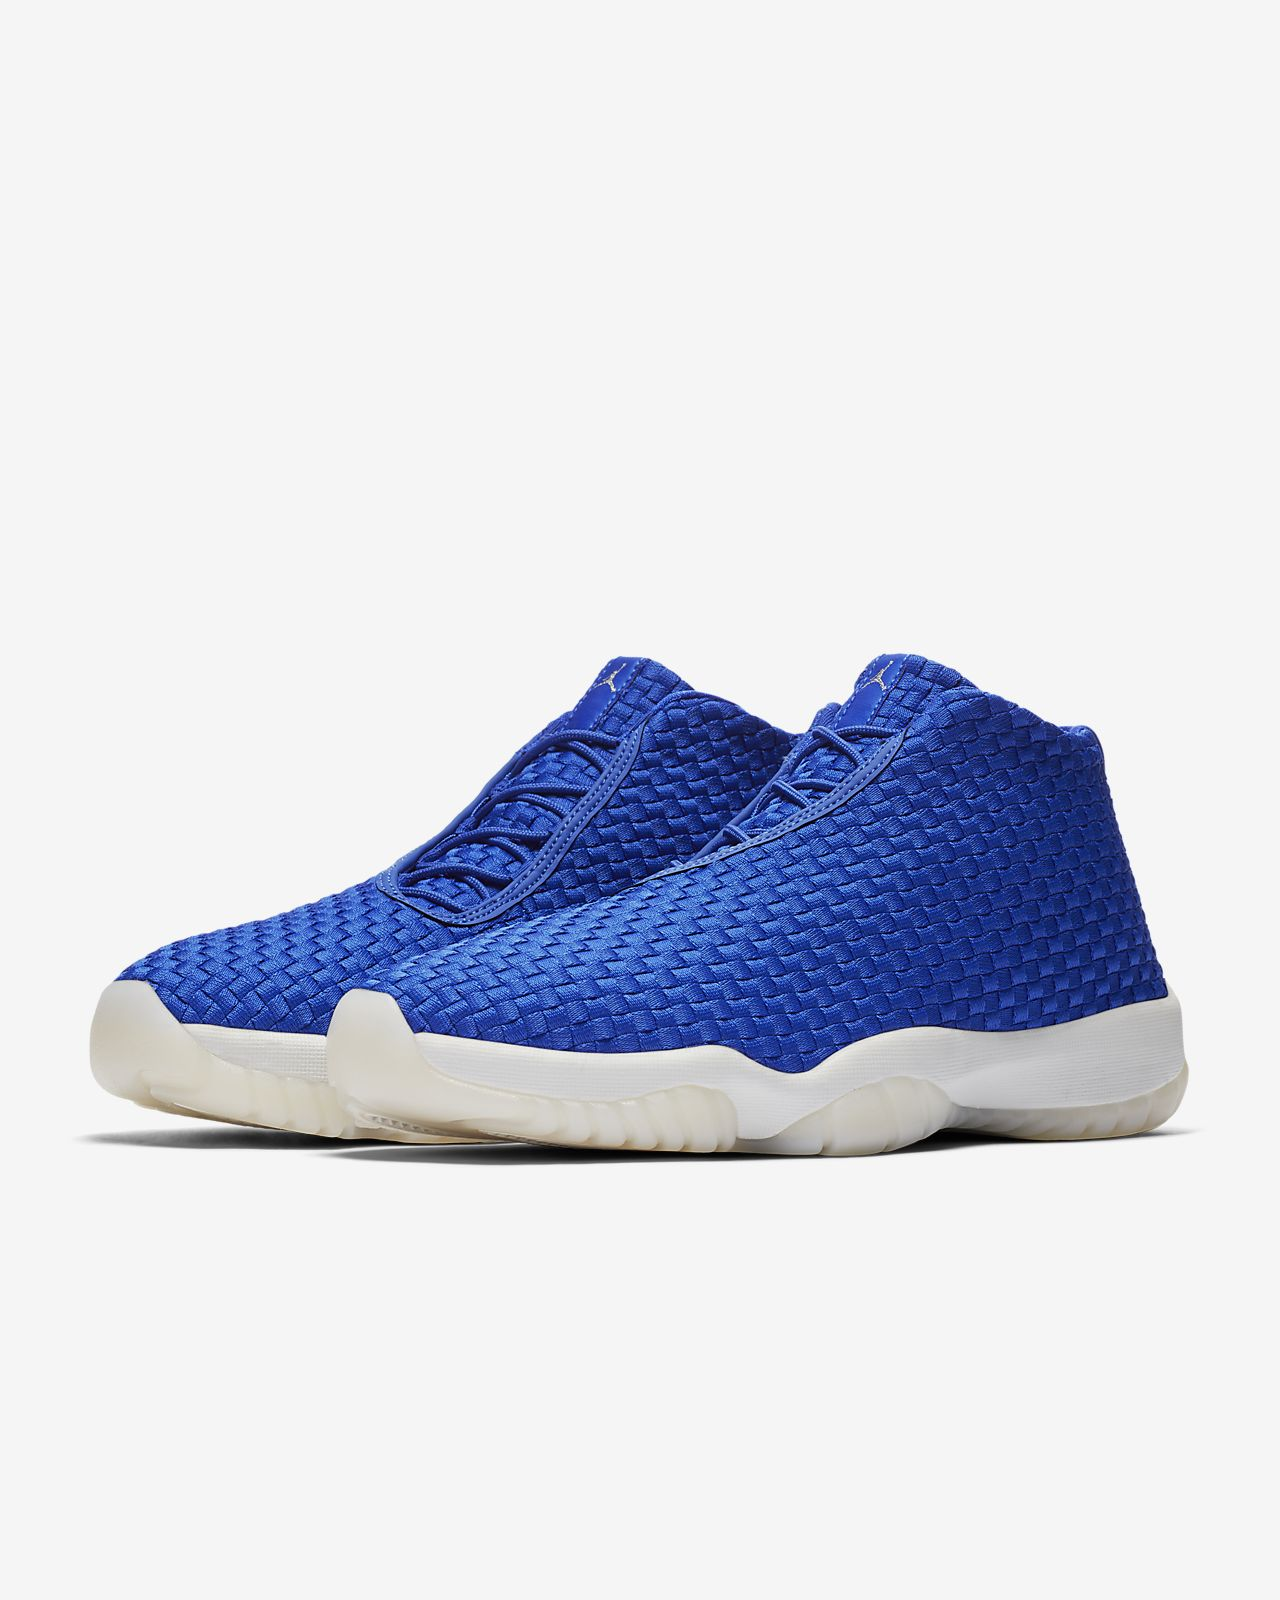 Other The Cheapest Price Nike Air Jordan Future Mens Hi Top Basketball Trainers 656503 Sneakers Shoes 305 Cheapest Price From Our Site